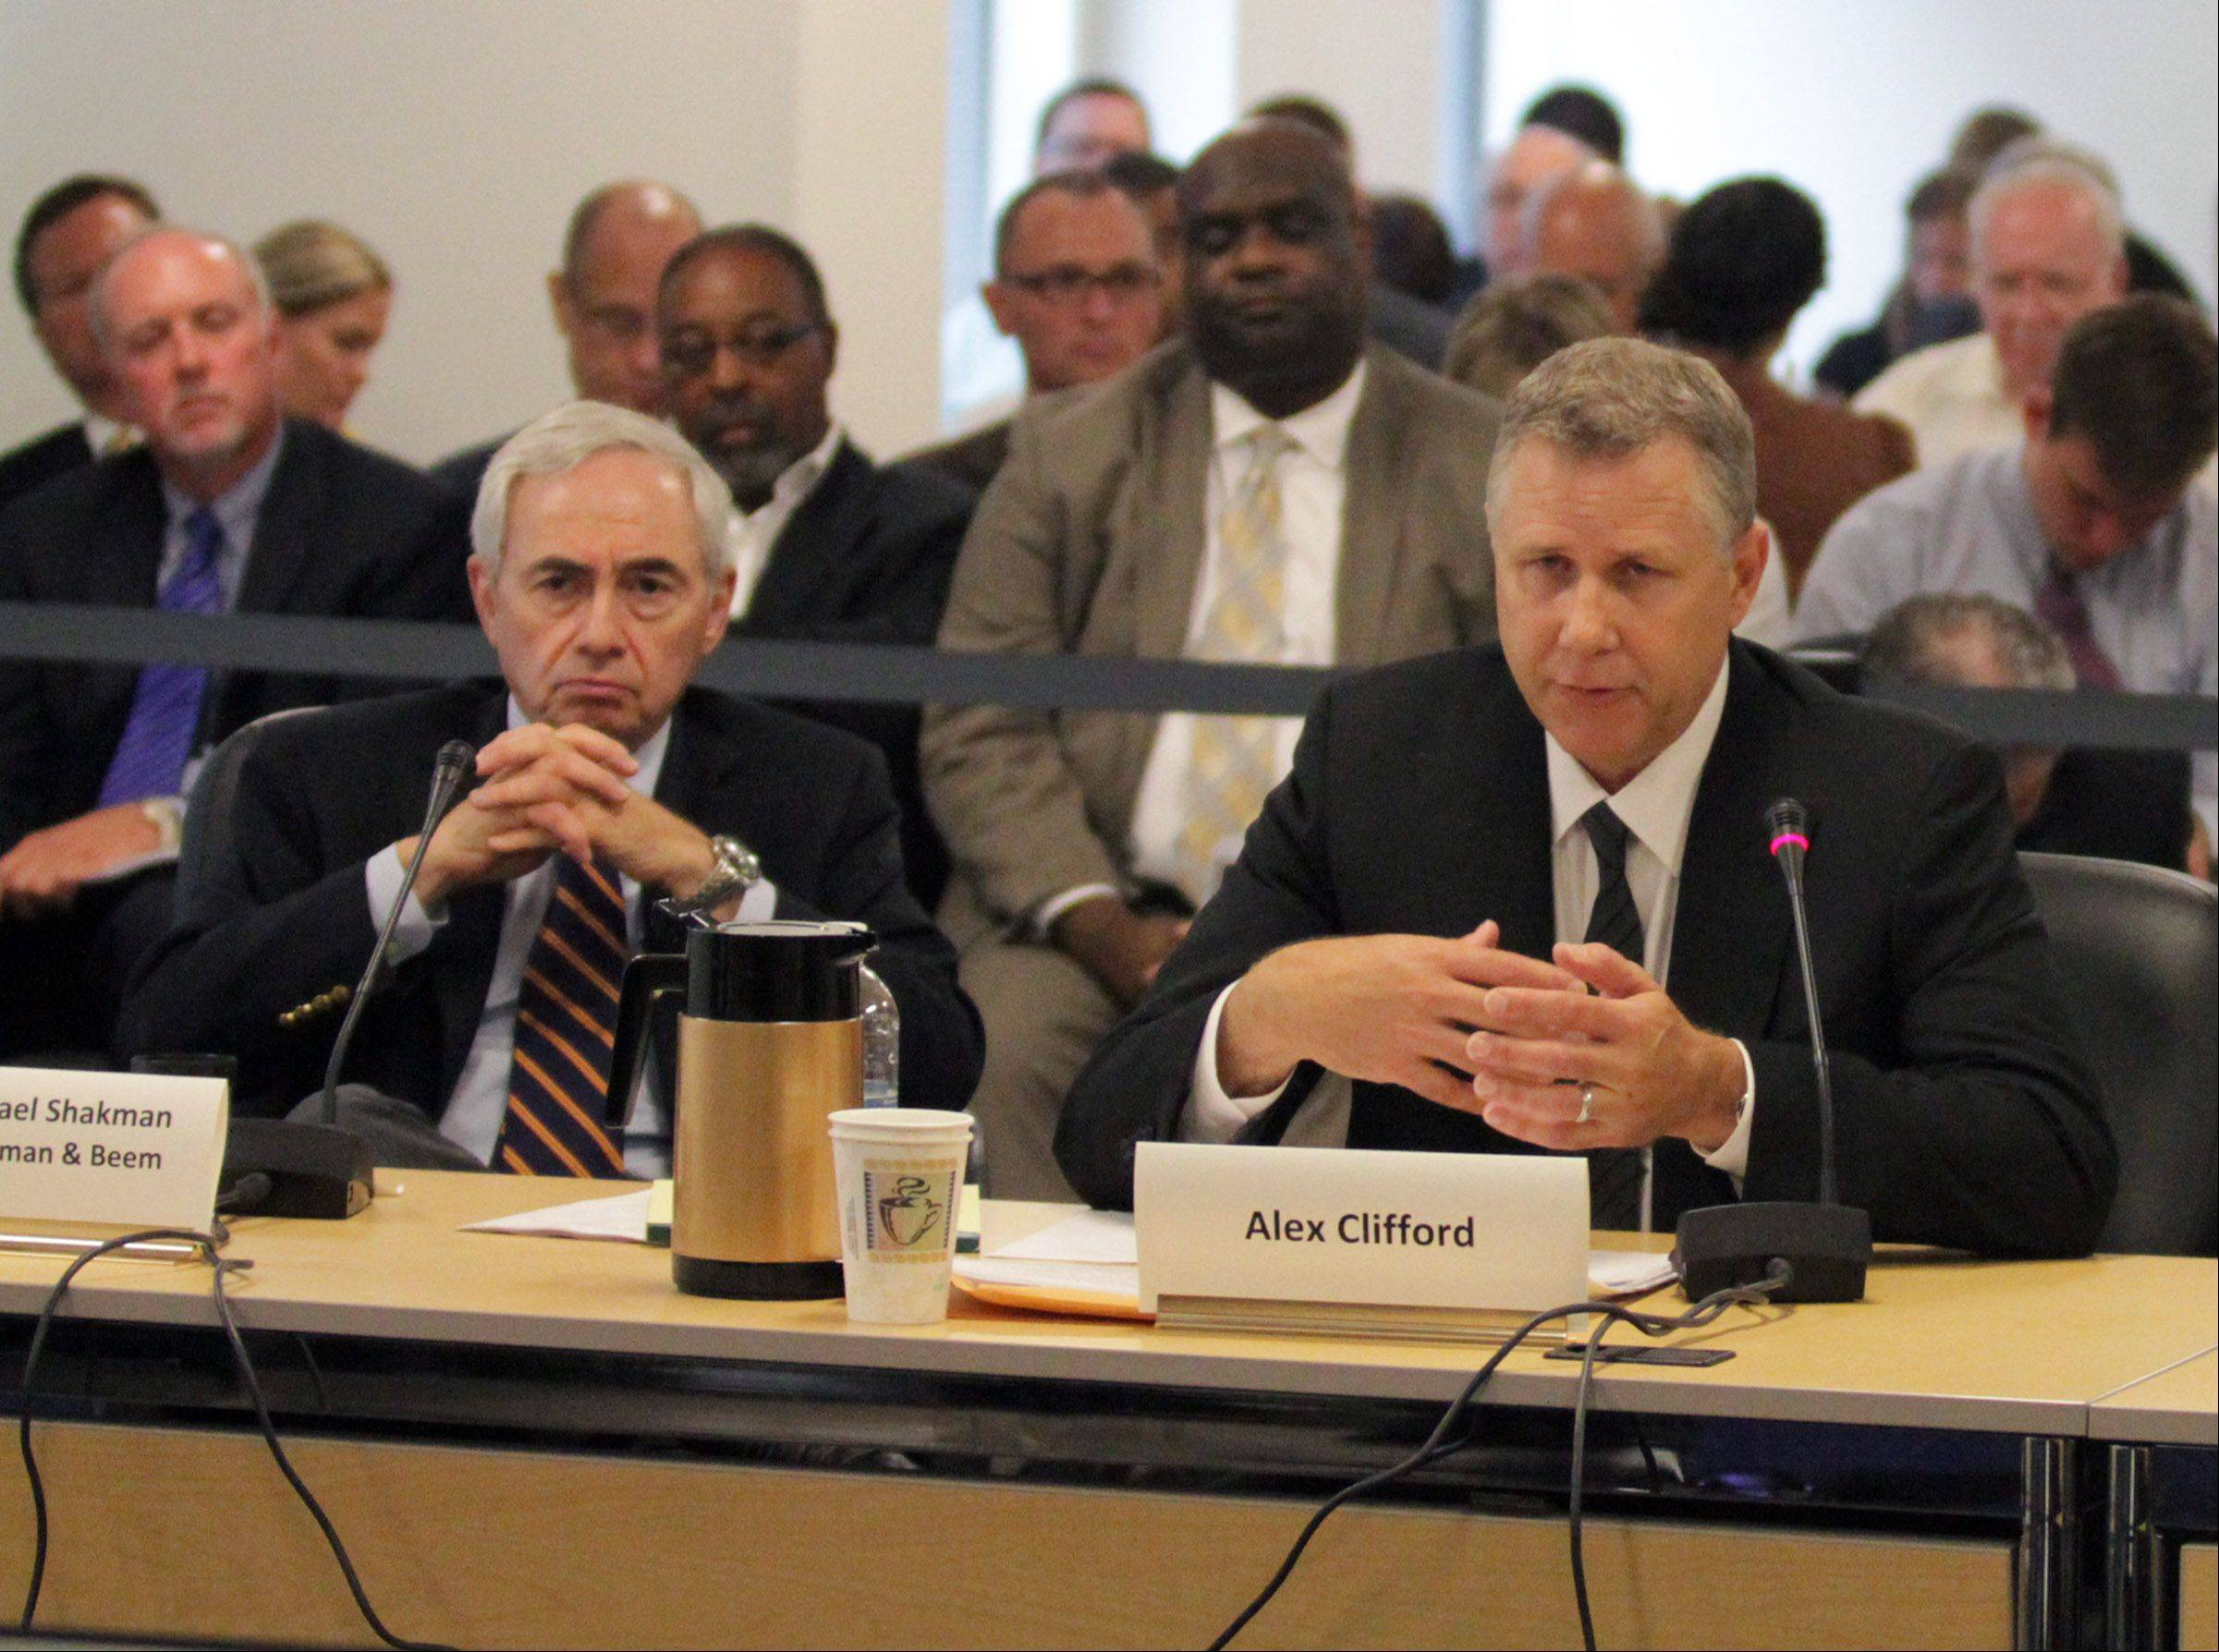 Former Metra CEO Alex Clifford, center, speaks to the RTA board, with his attorney Michael Shakman, left, on Wednesday about allegations of political patronage that led to his departure. Behind are Metra Chairman Brad O'Halloran, far left, and Director Larry Huggins, center.